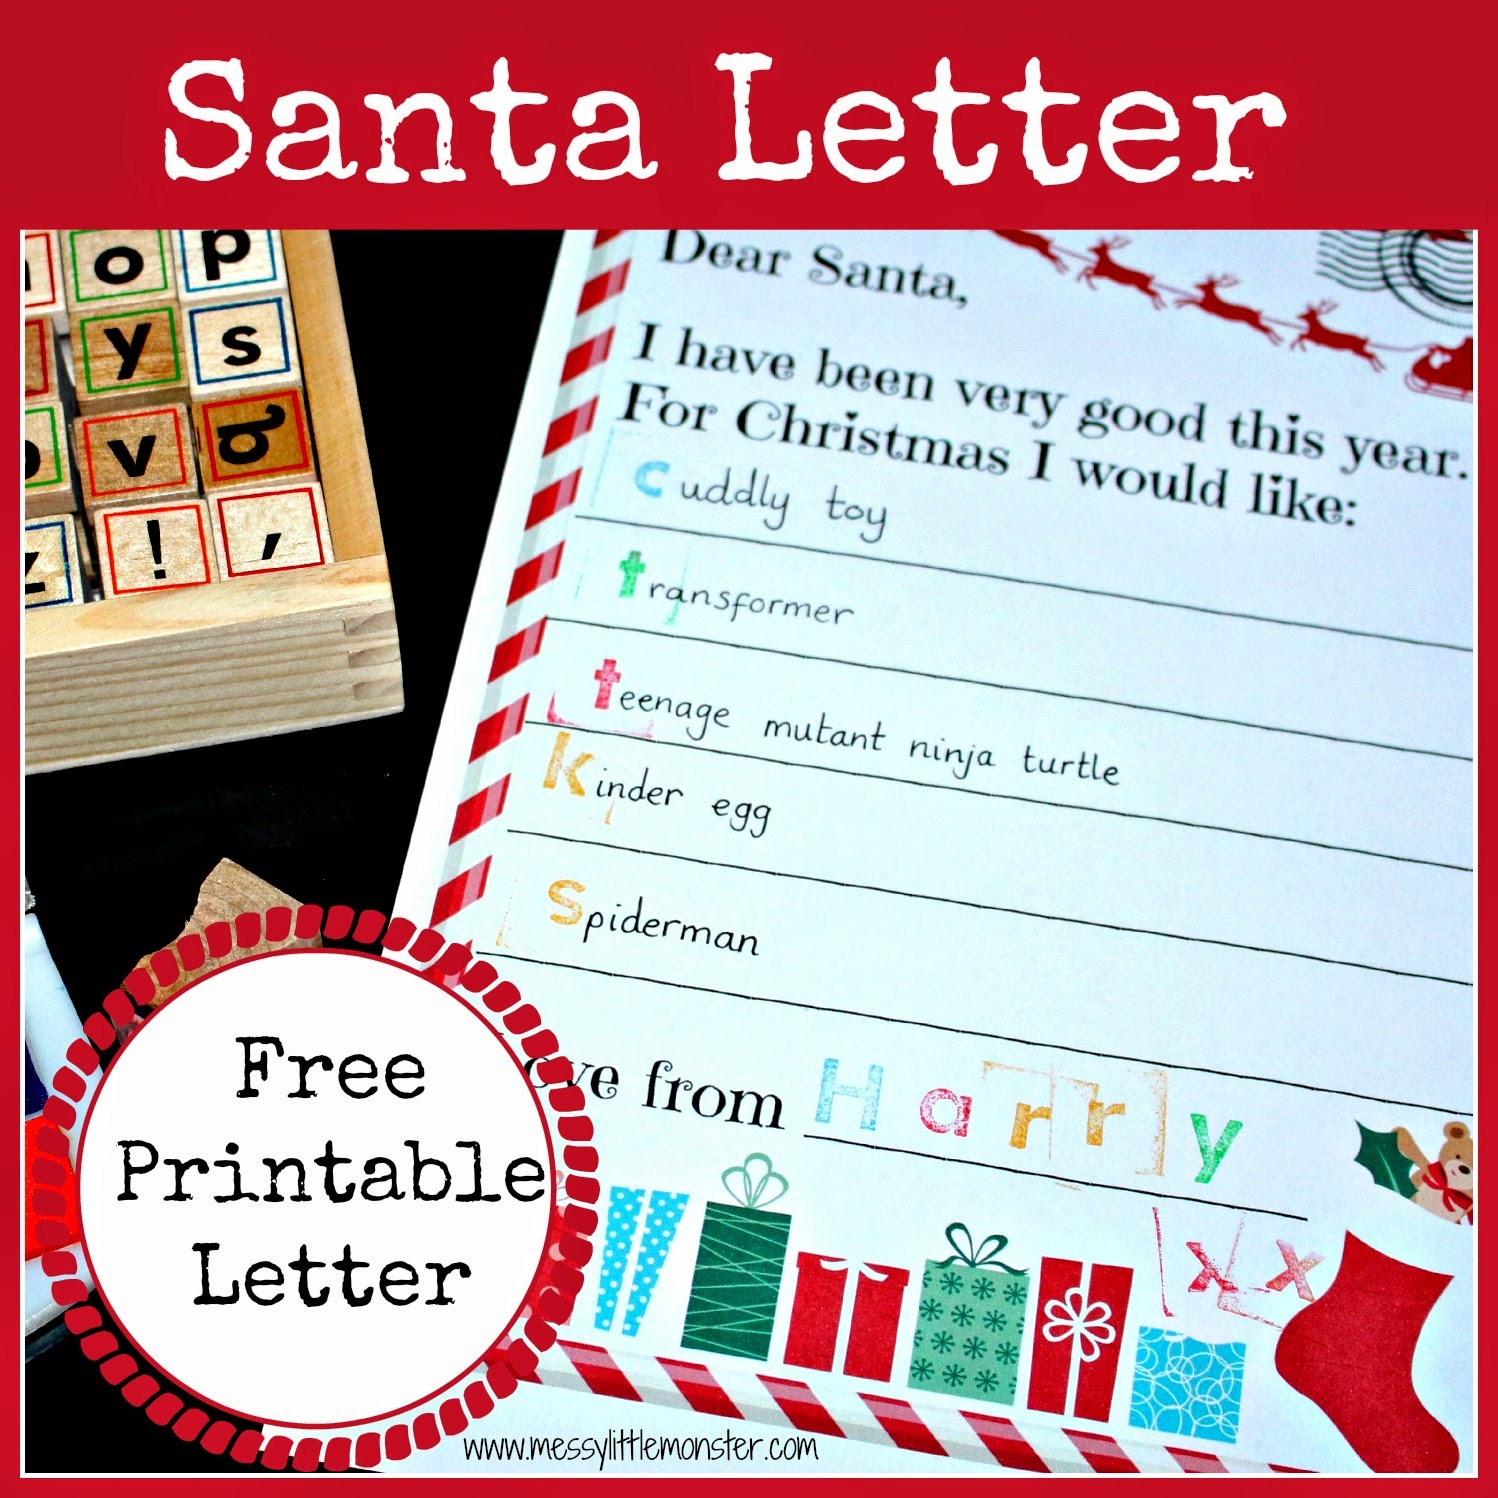 Free printable santa letter. A fun Christmas activity for kids.